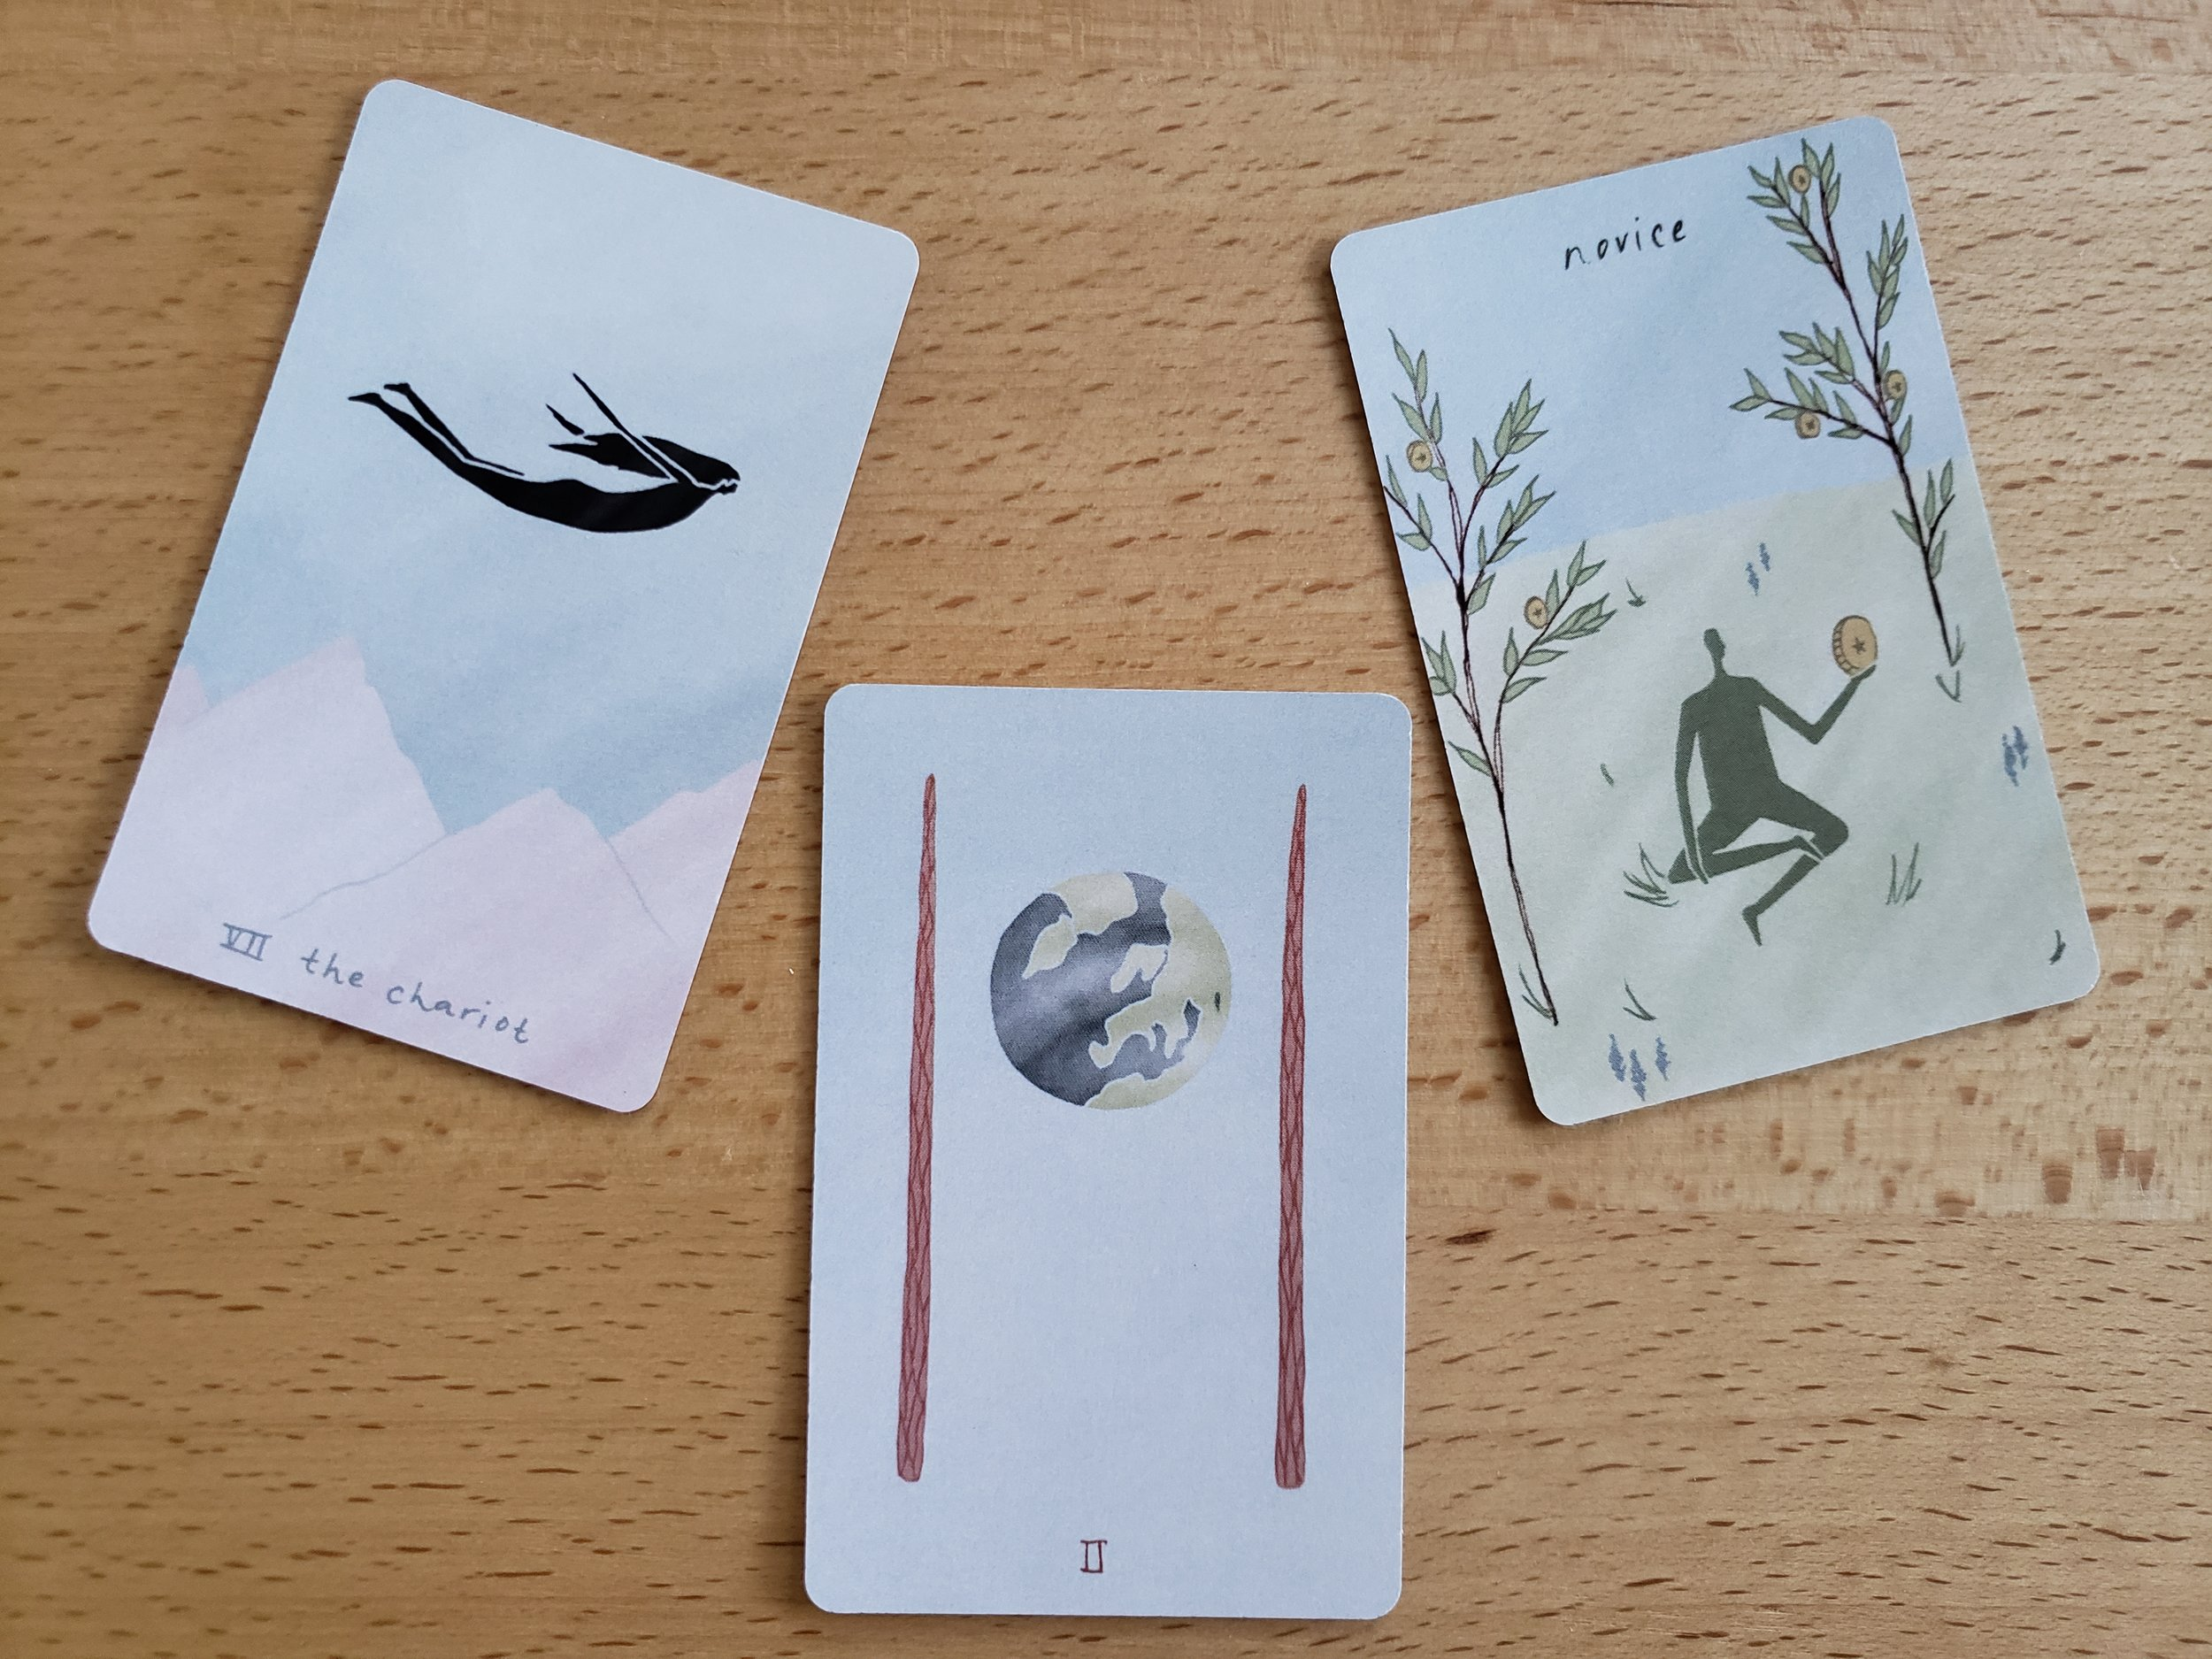 some beauties from the Mesquite Tarot